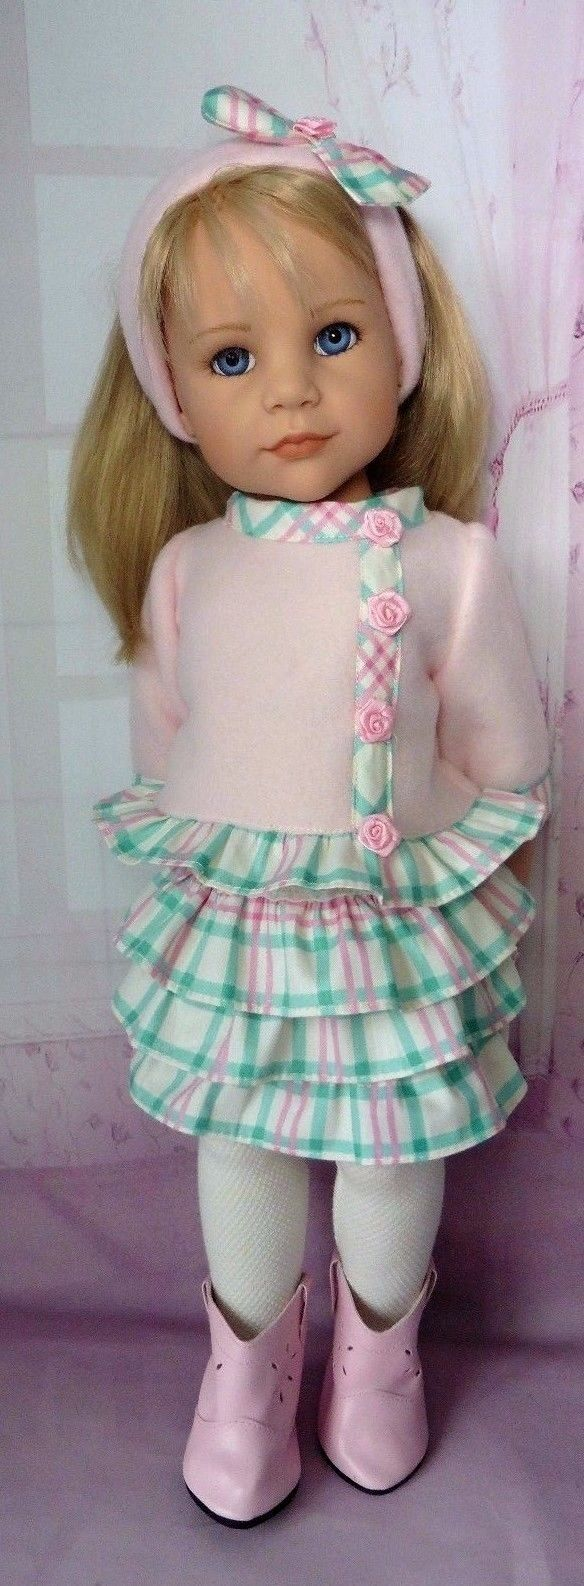 PIXIES HAND MADE:4 PIECE OUTFIT : COMPATIBLE WITH GOTZ HANNAH 18 INS DOLL | eBay